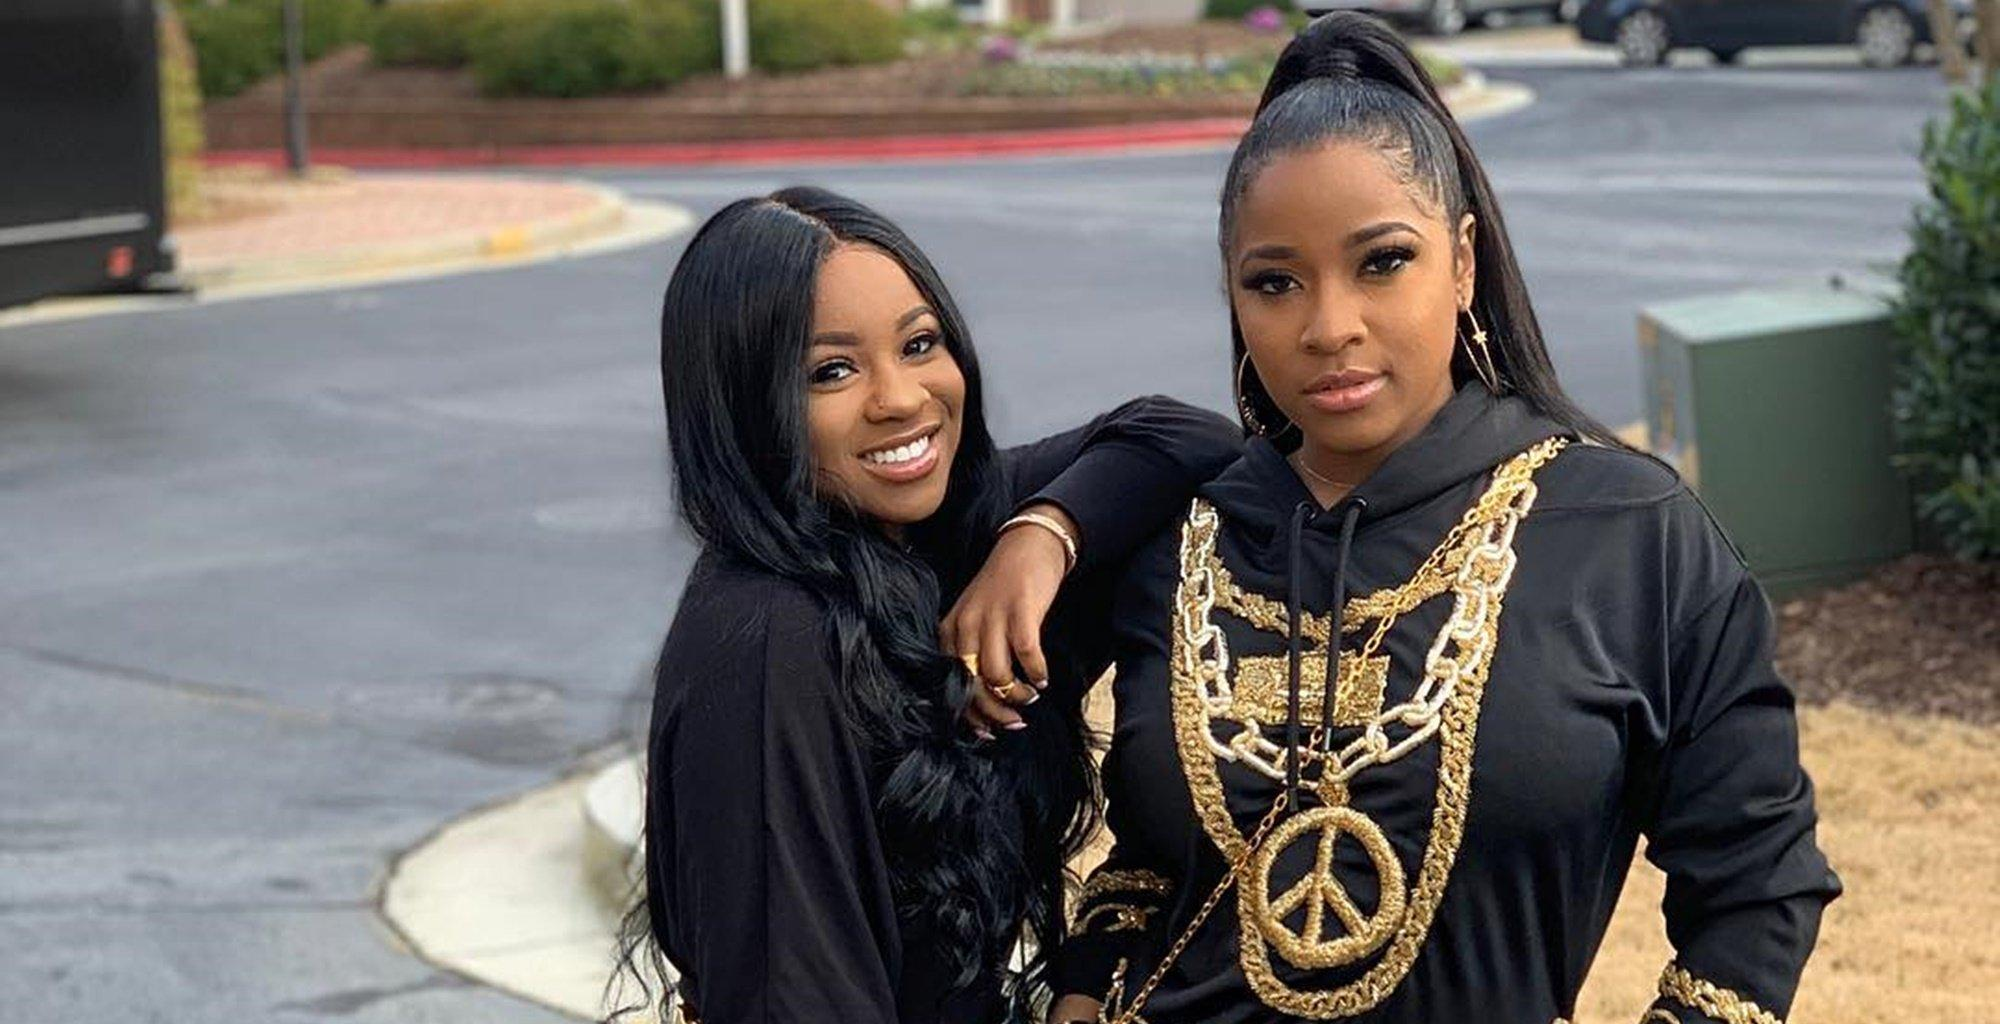 Reginae Carter And Toya Wright Pose Together And Fans Respect Their Relationship And Support Nae Following The Breakup From YFN Lucci